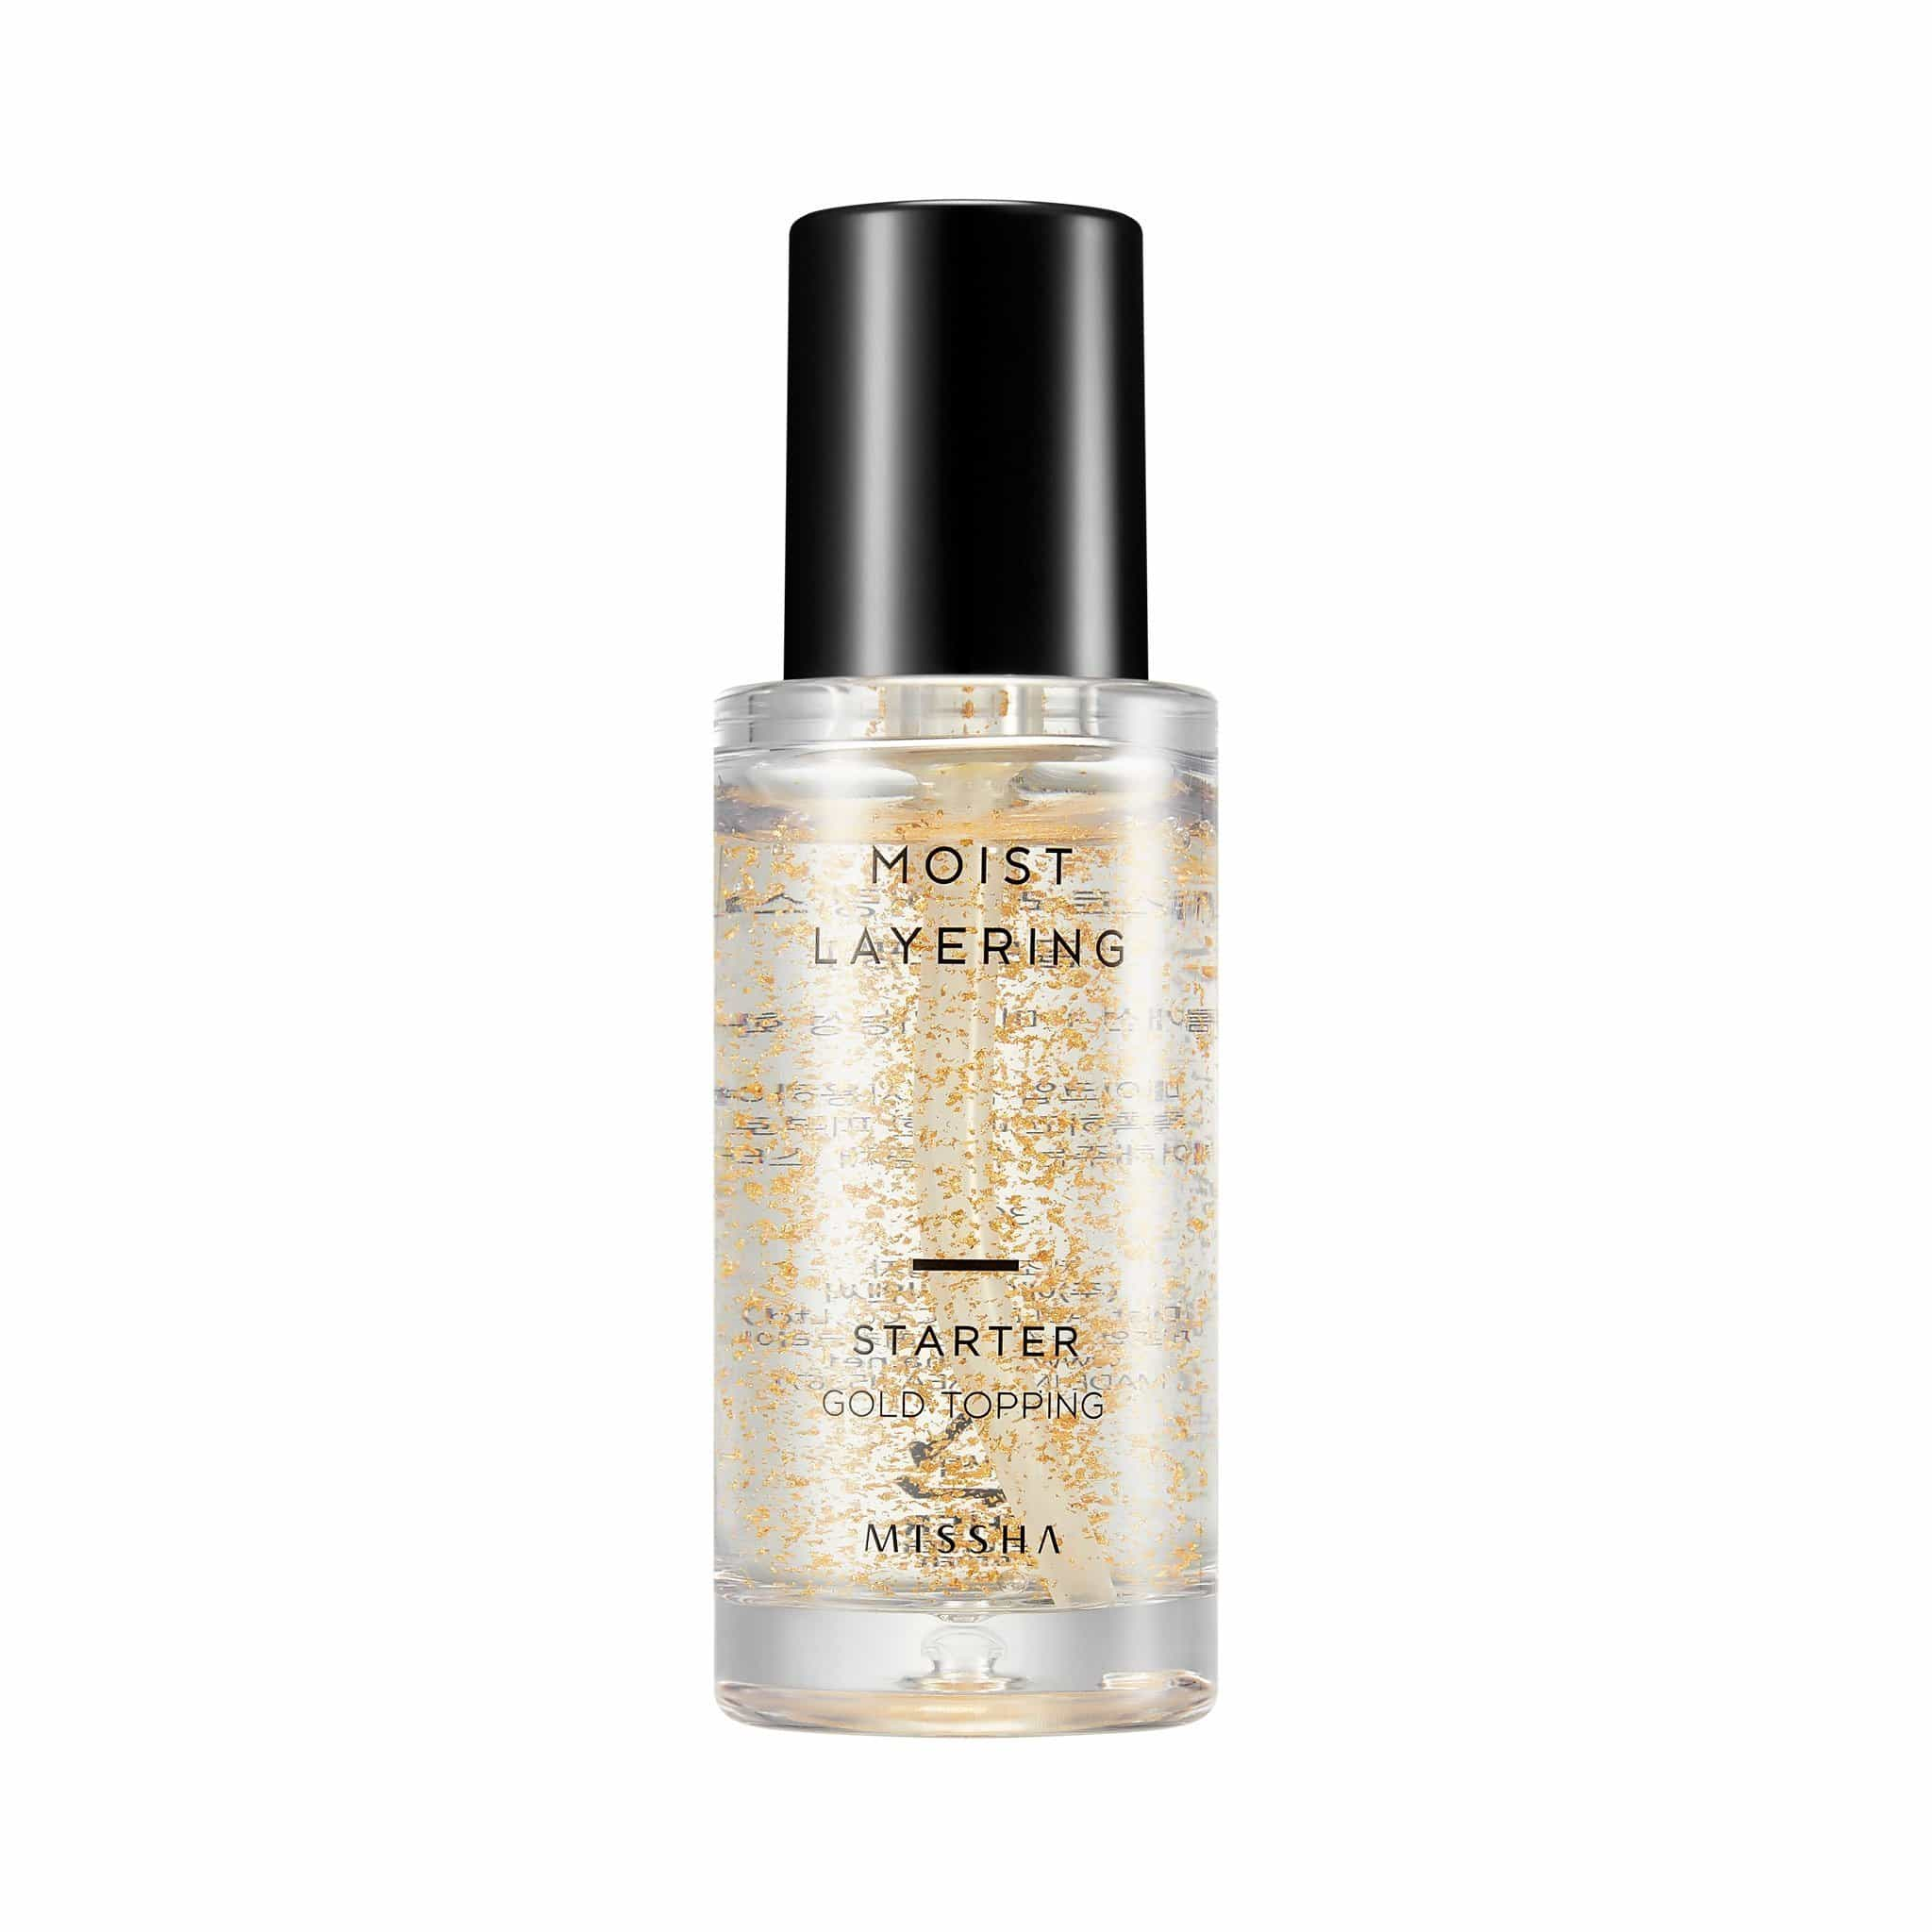 MOIST LAYERING STARTER GOLD TOPPING - MISSHA